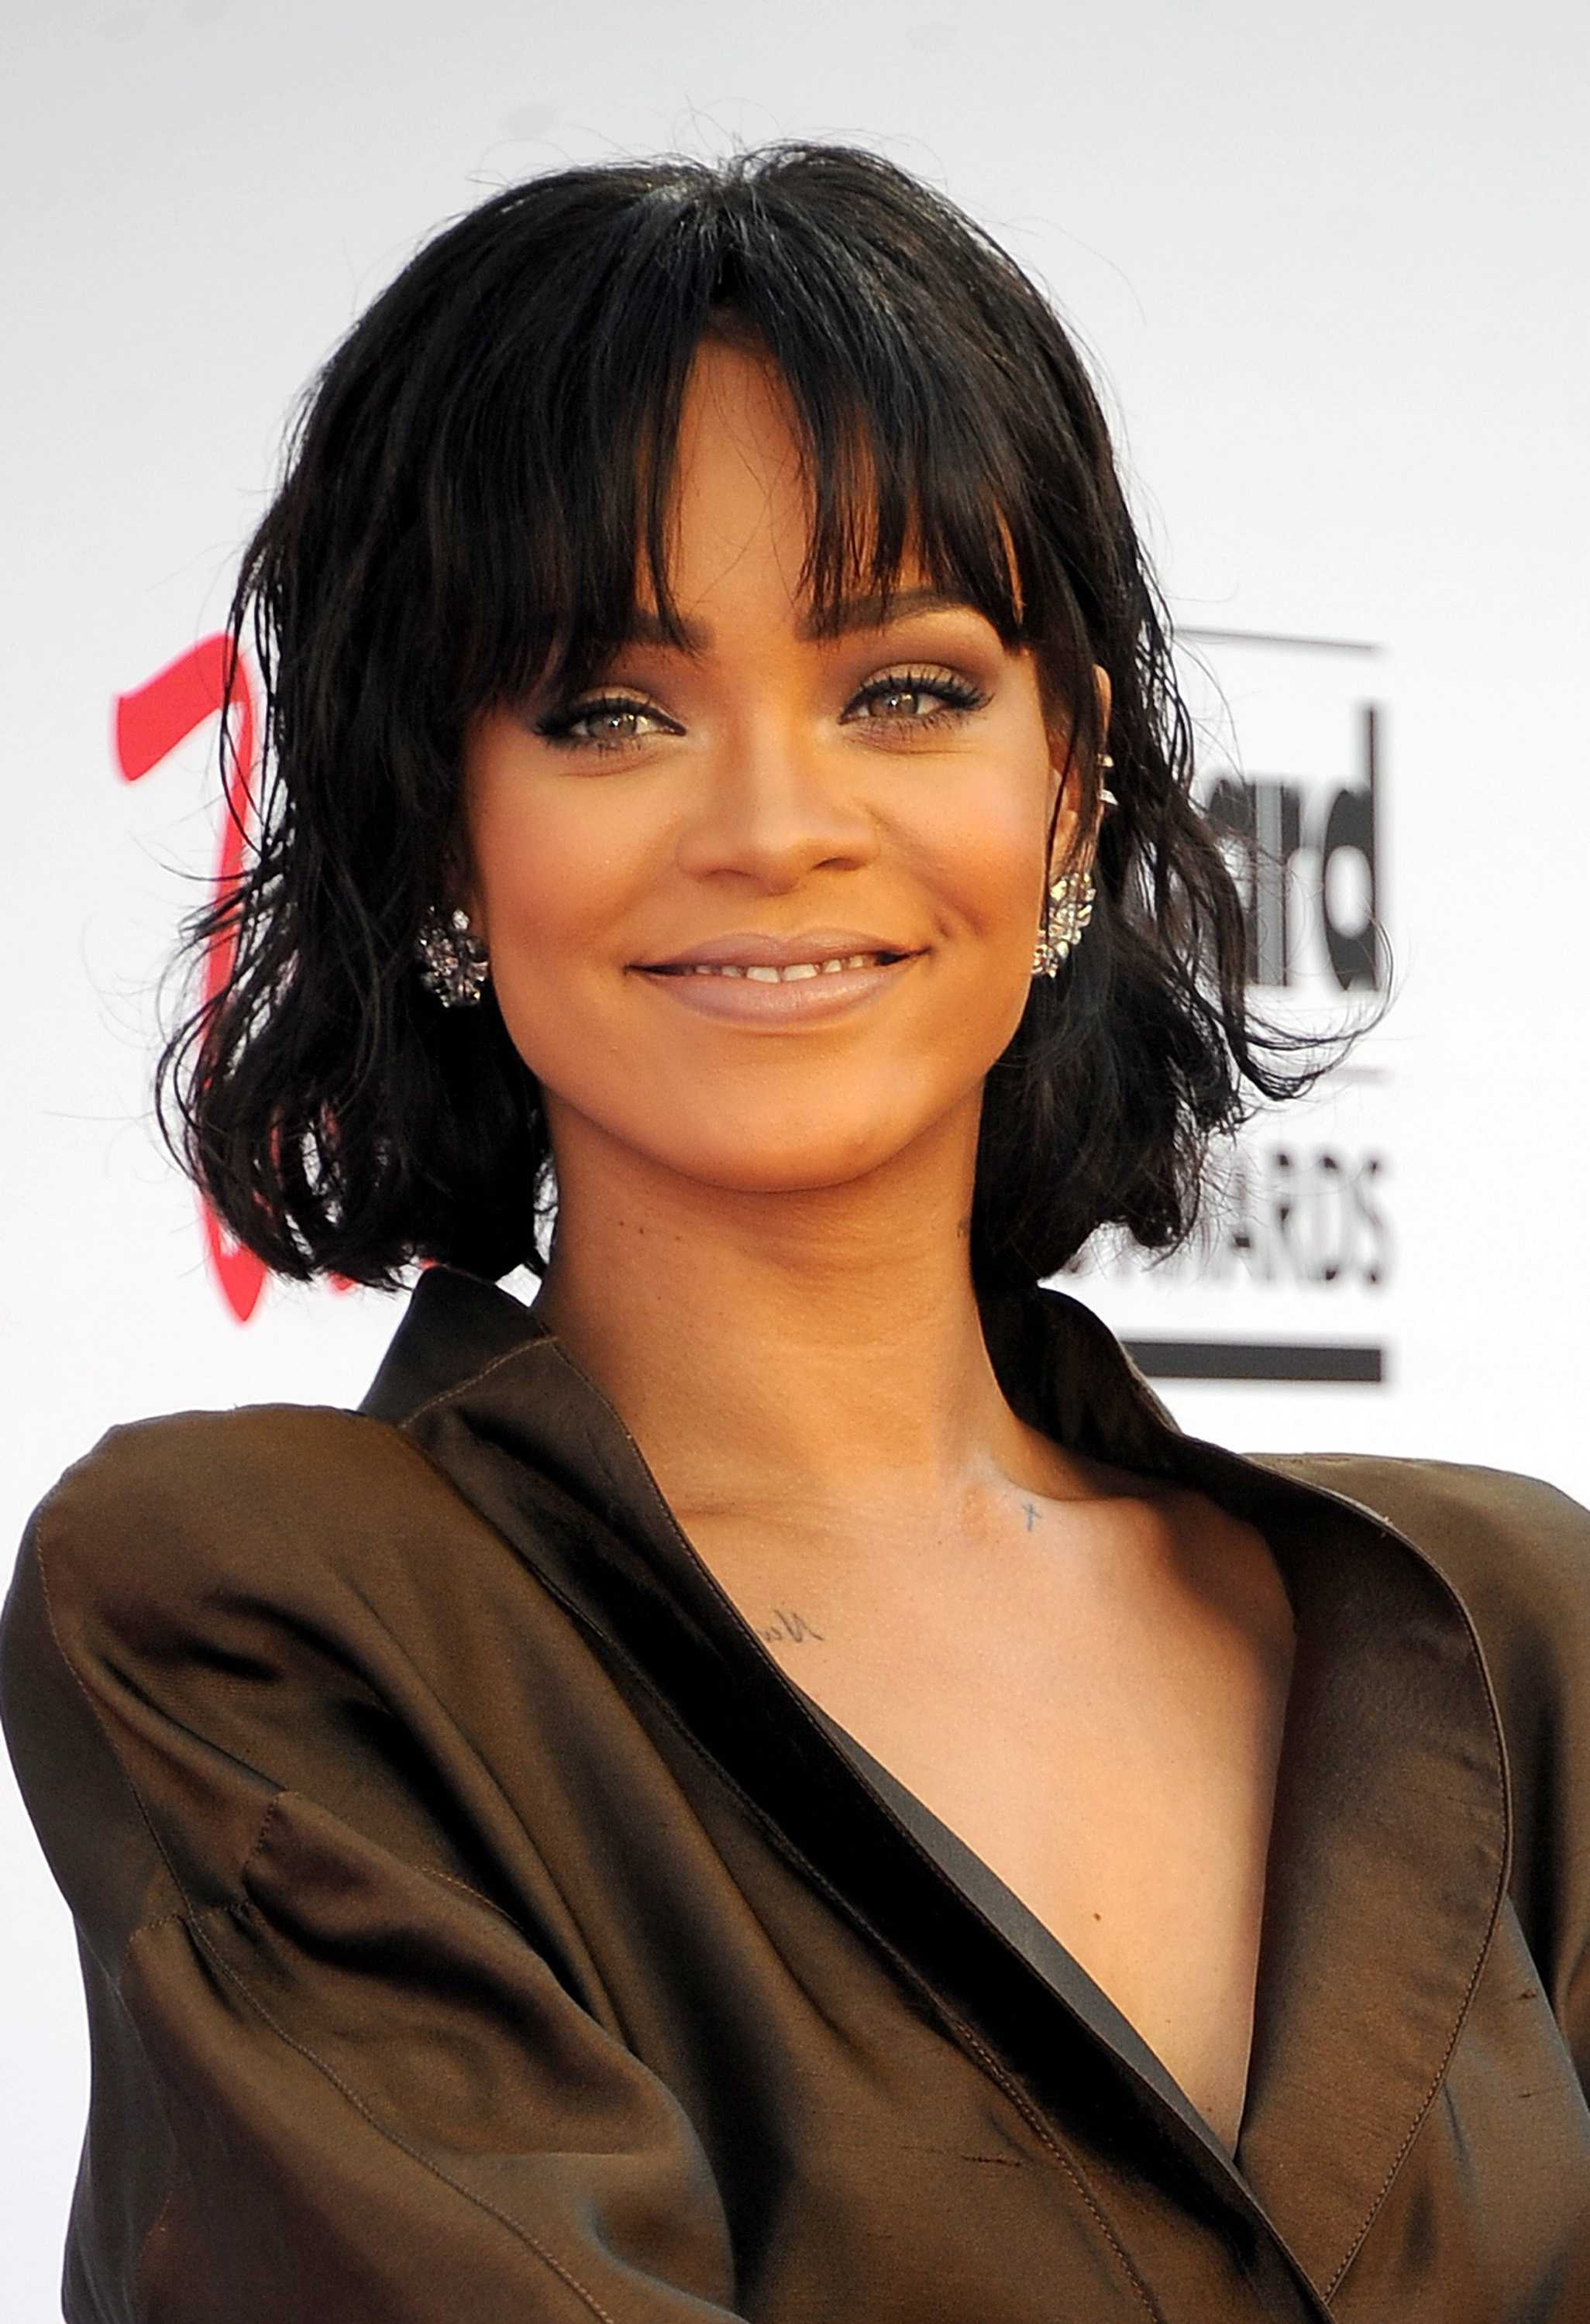 Rihanna pictured smiling, shes wearing a dark green jacket and has short black hair with bangs